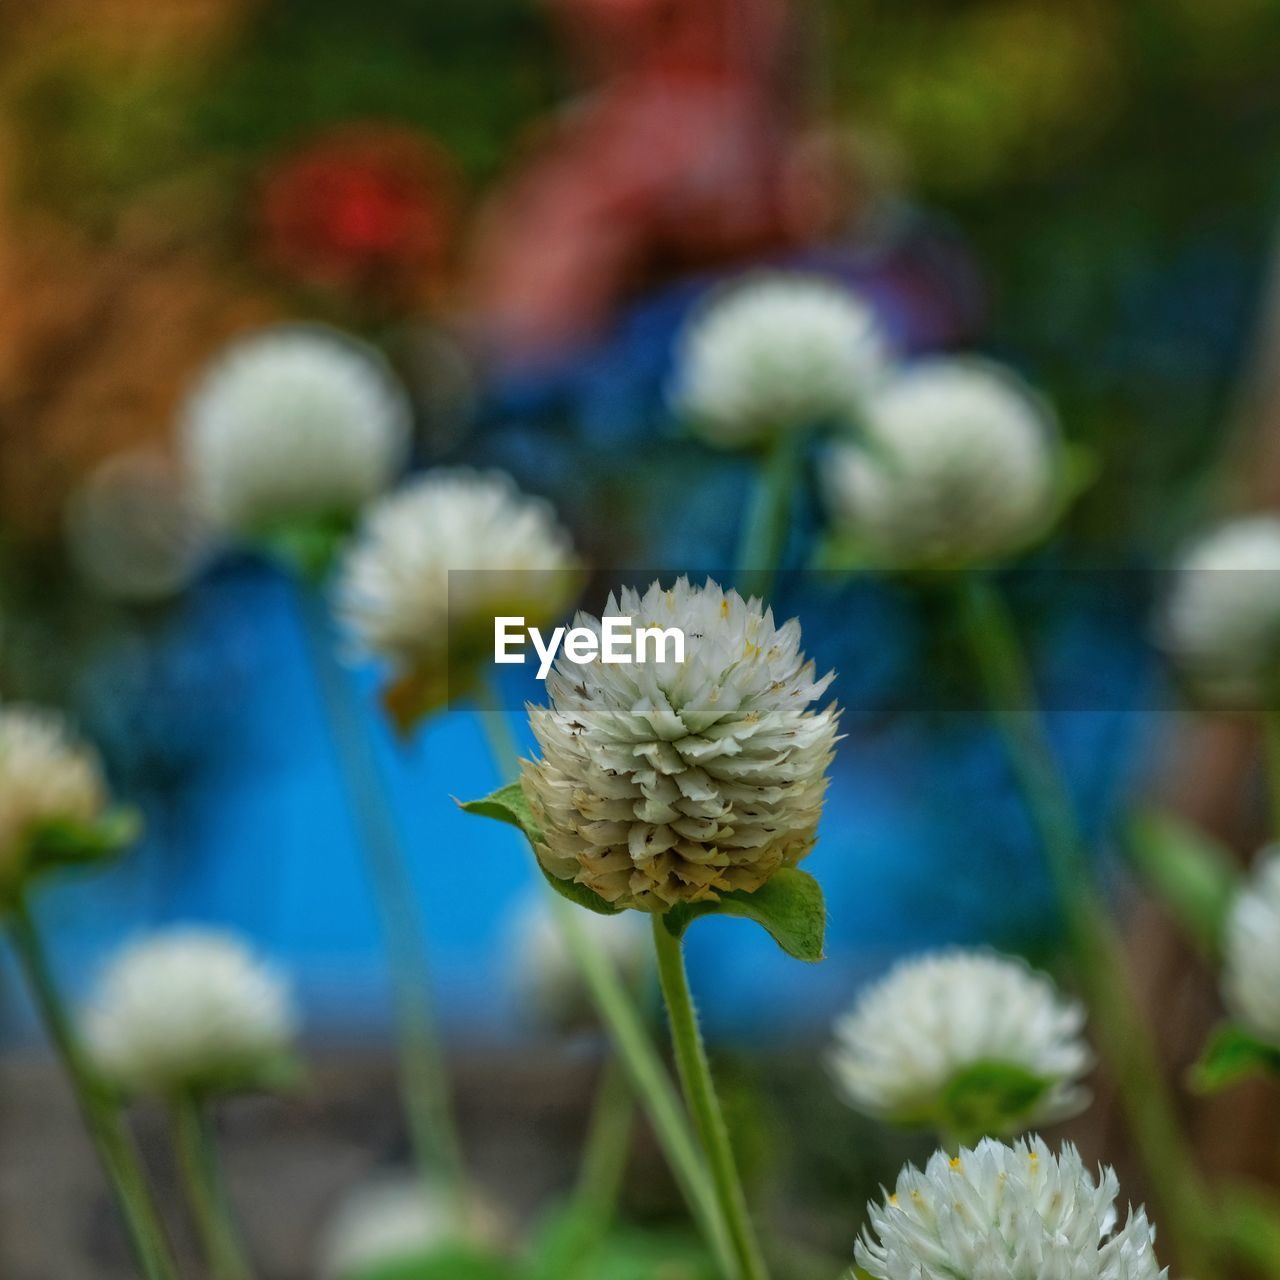 flower, flowering plant, fragility, vulnerability, beauty in nature, freshness, plant, growth, flower head, close-up, inflorescence, focus on foreground, petal, nature, day, no people, selective focus, plant stem, botany, white color